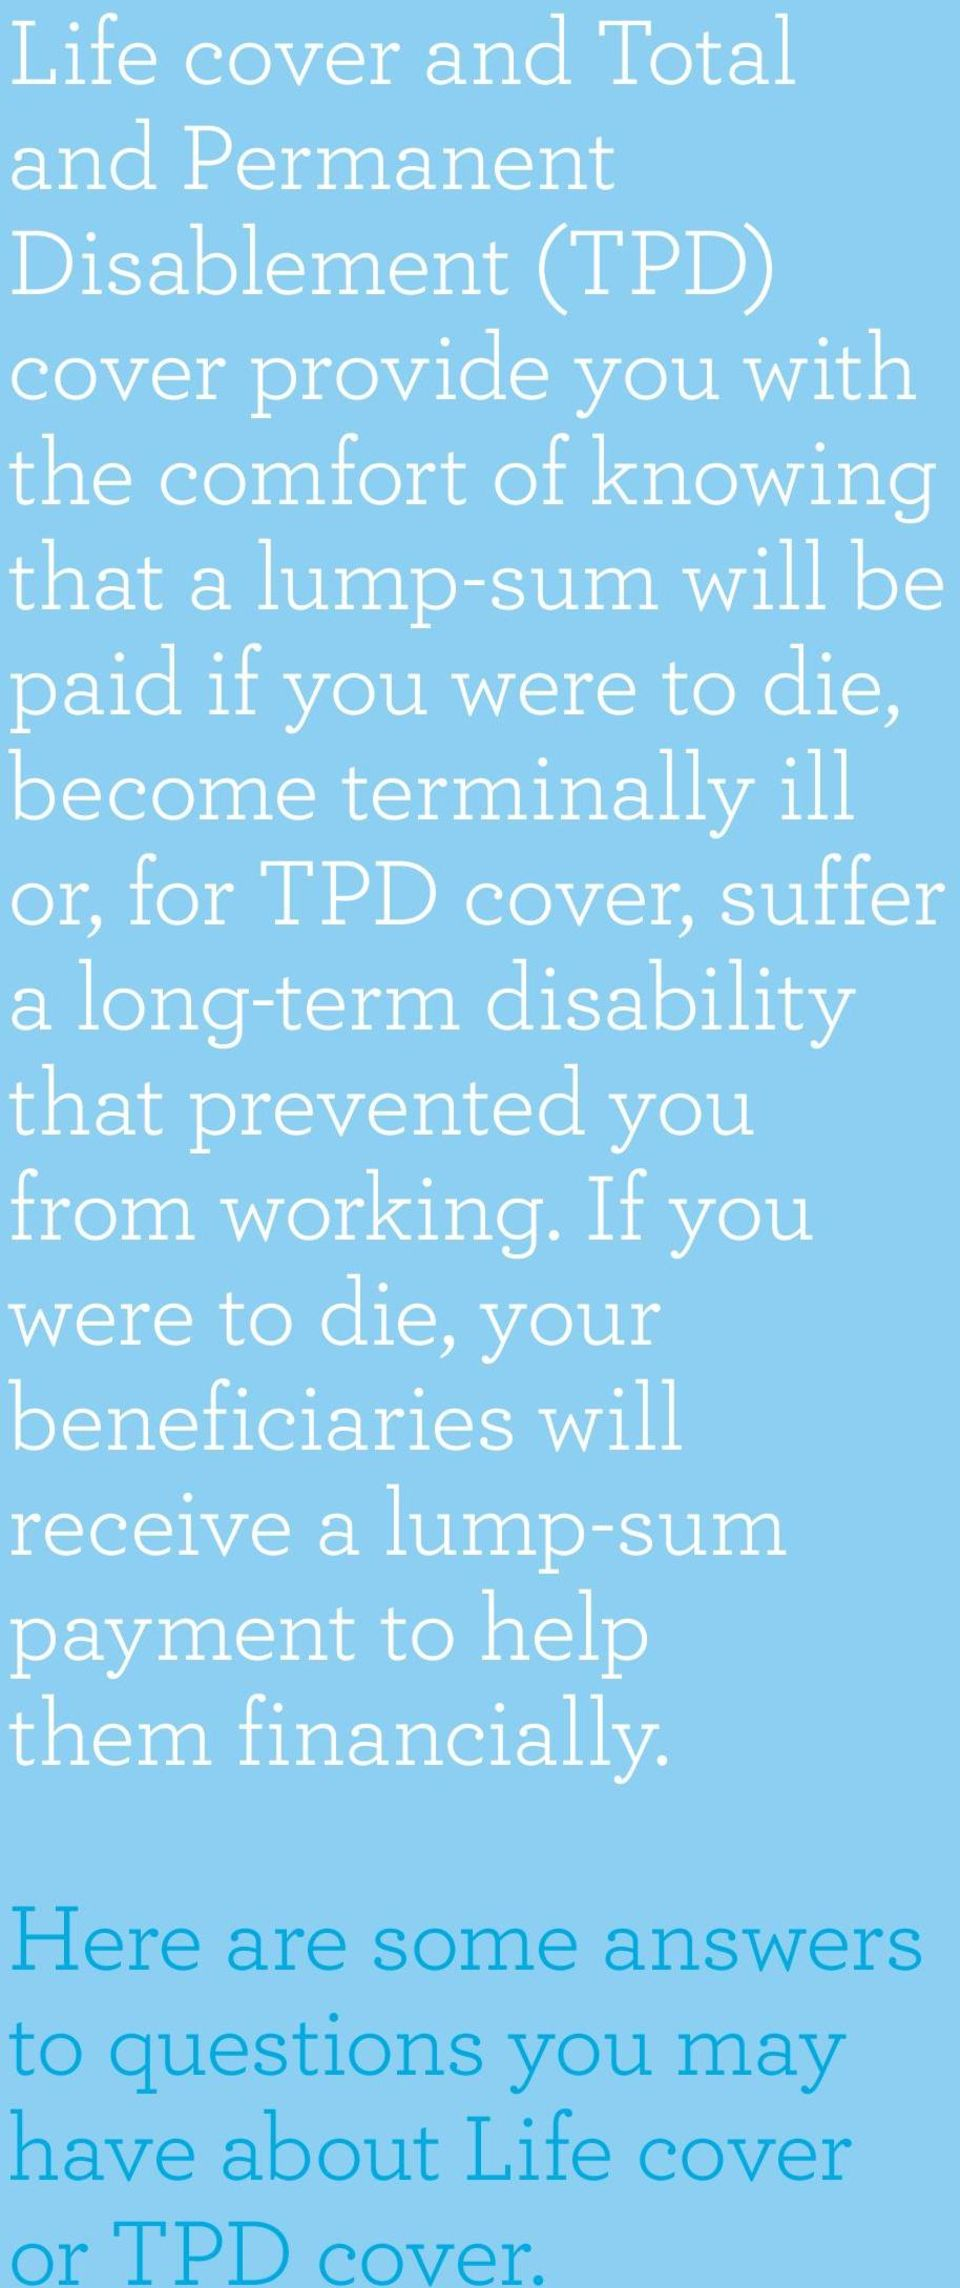 disability that prevented you from working.